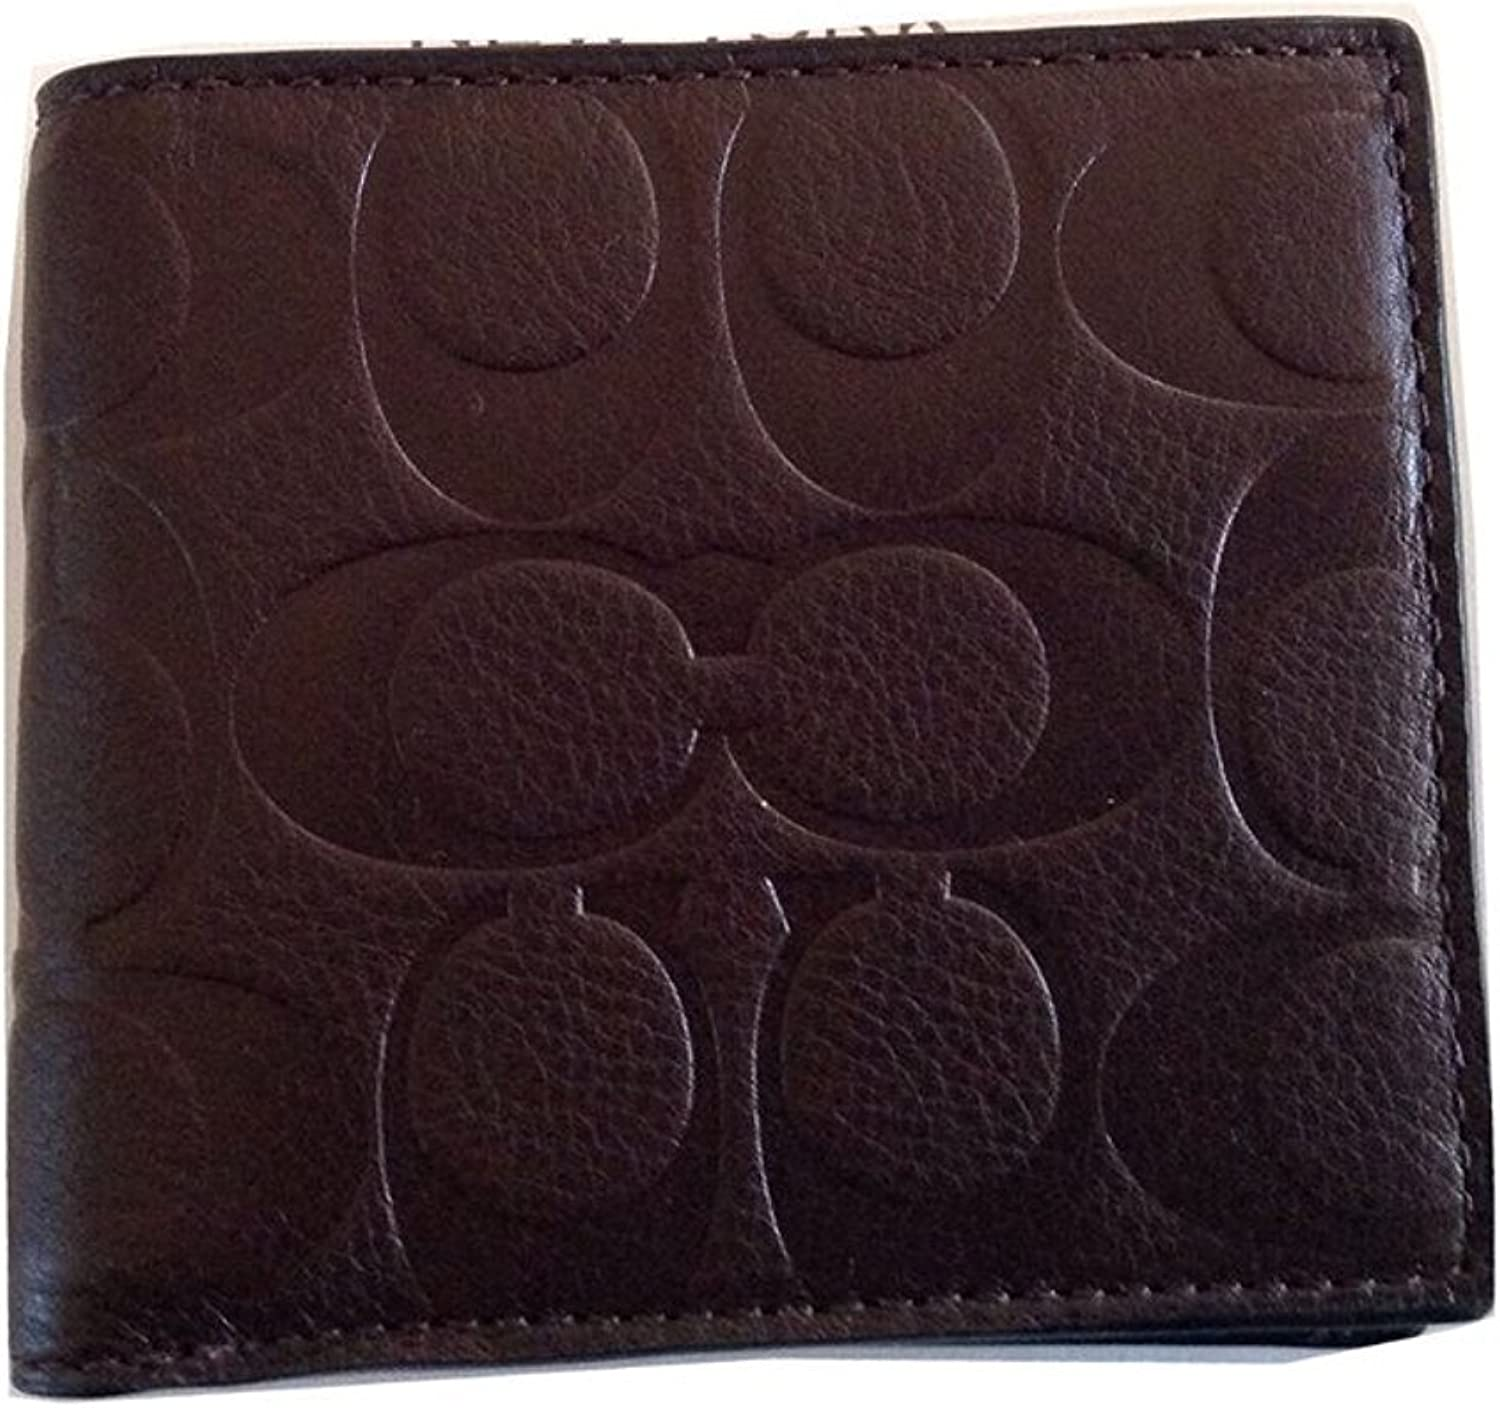 Coach Men's Mahogany Signature Leather Coin/Credit Card Wallet